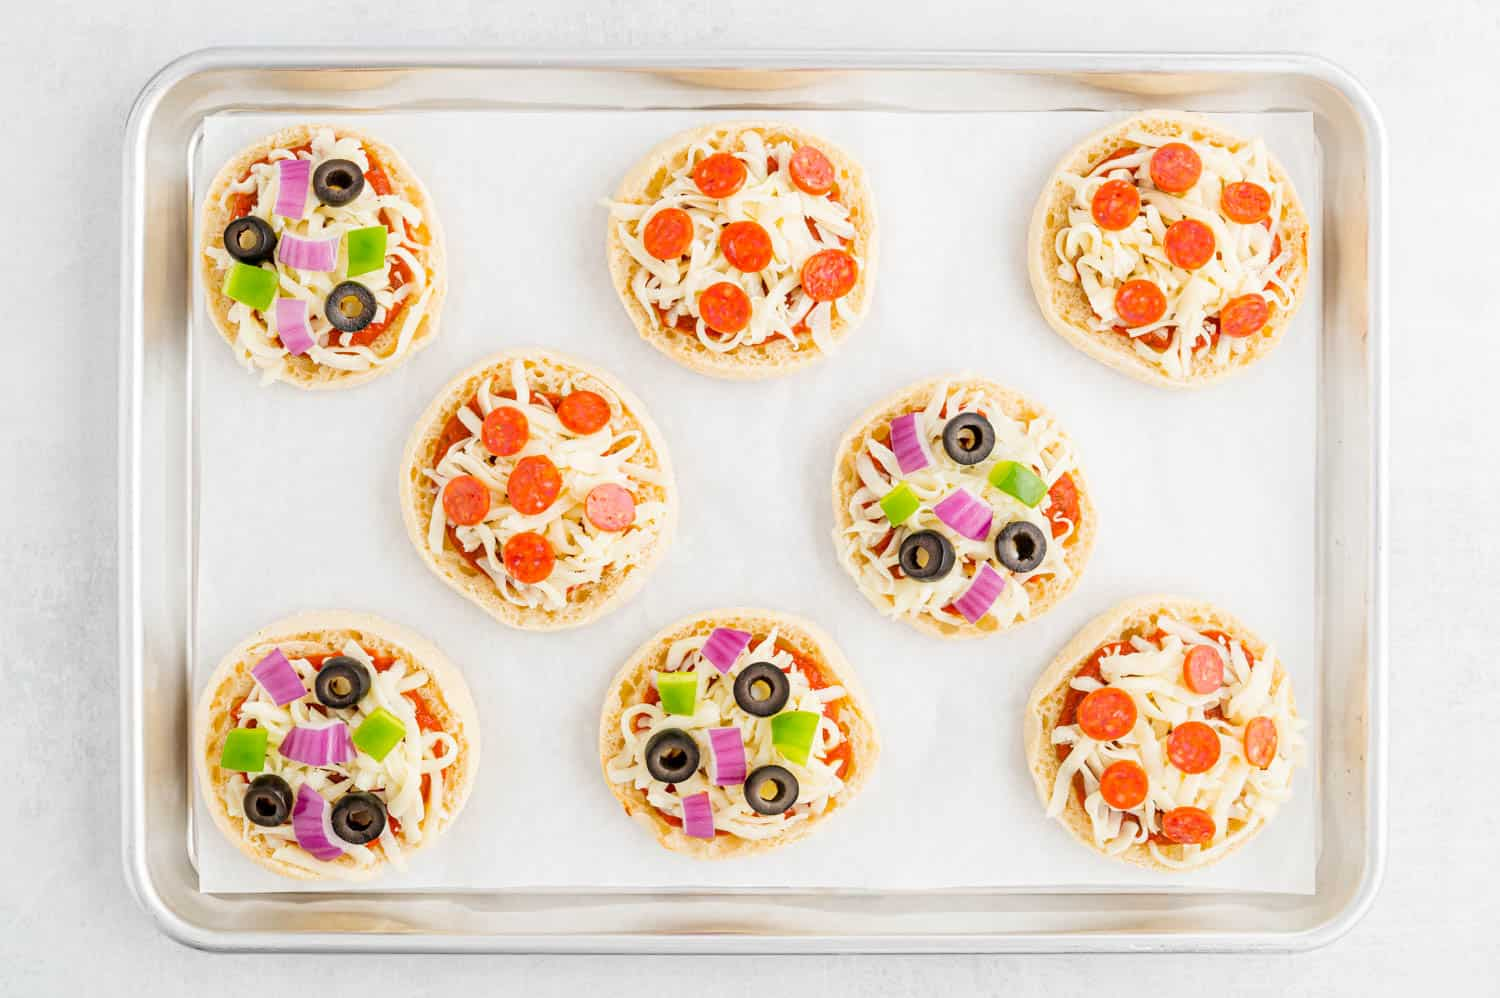 Uncooked english muffin pizzas on a sheet pan.